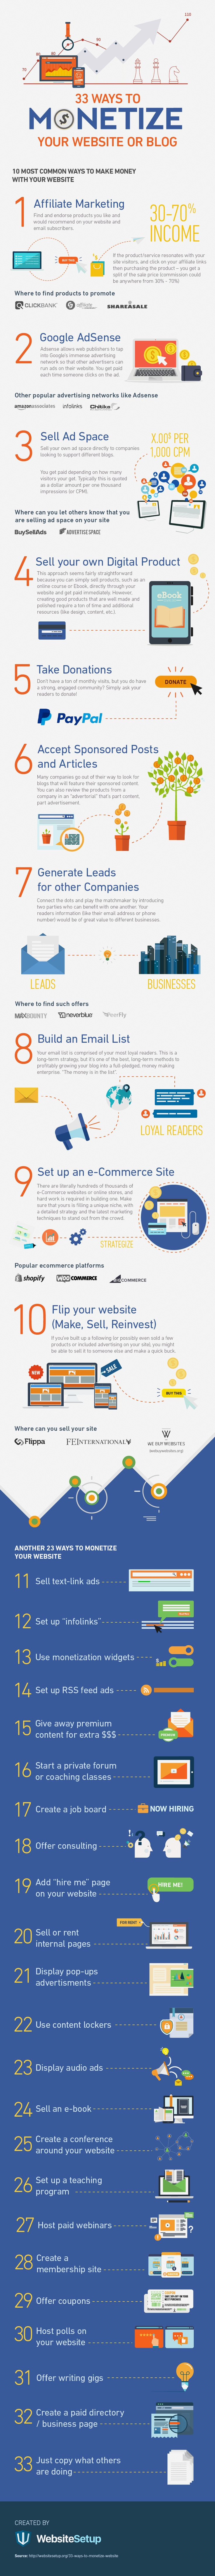 33 Ways to Actually Make Money from a Website or Blog [Infographic]